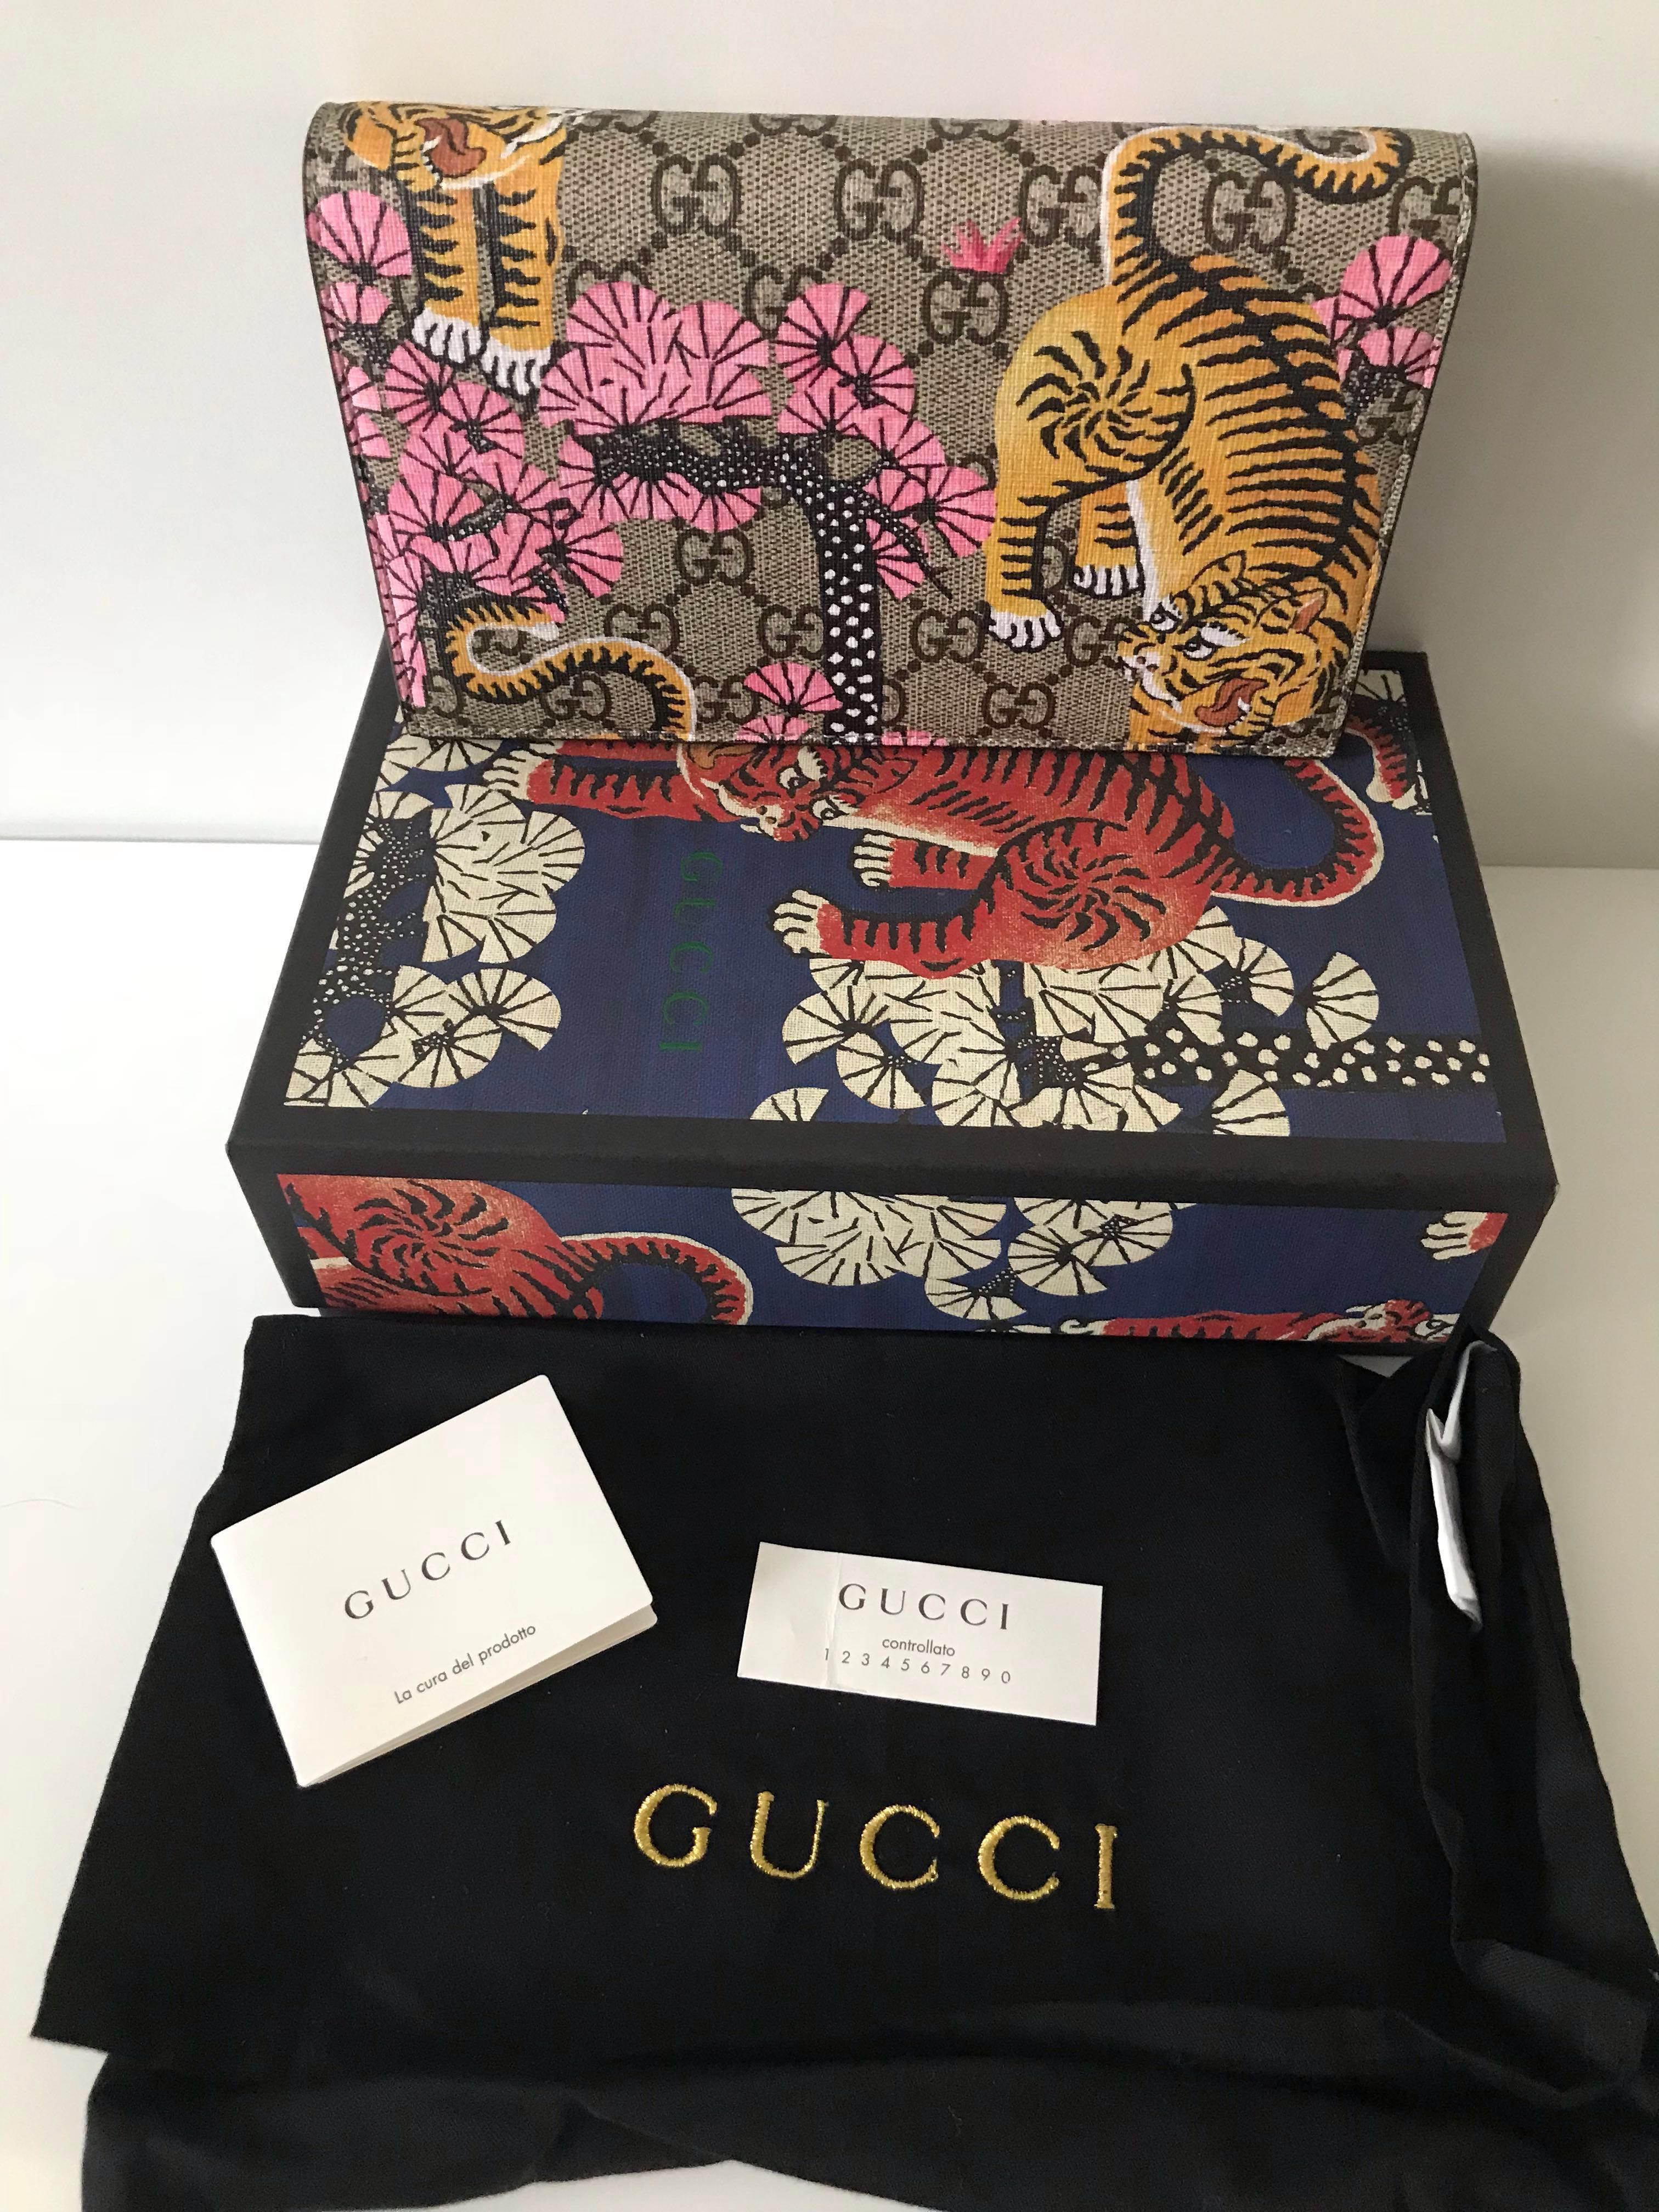 1d77104aa015 Gucci GG Supreme Monogram Bengal Chain Wallet Bag (Limited Edition),  Women's Fashion, Bags & Wallets, Wallets on Carousell